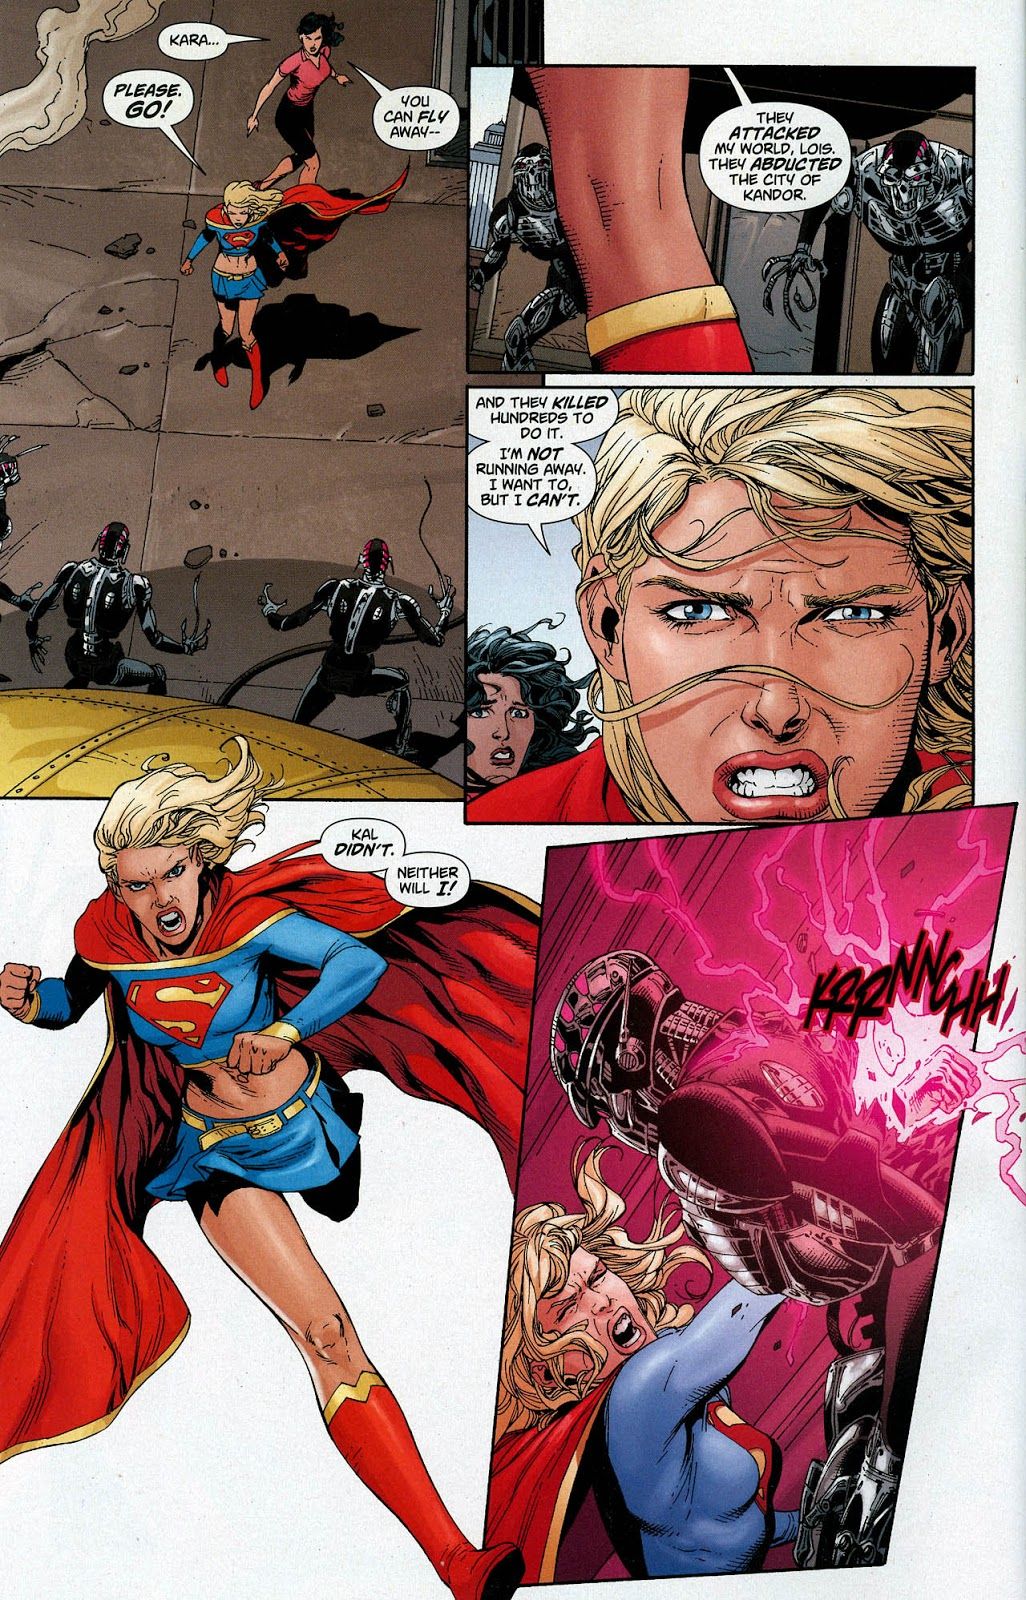 In 'Action Comics' (2008) #869, Supergirl punches through a Brainiac probe.